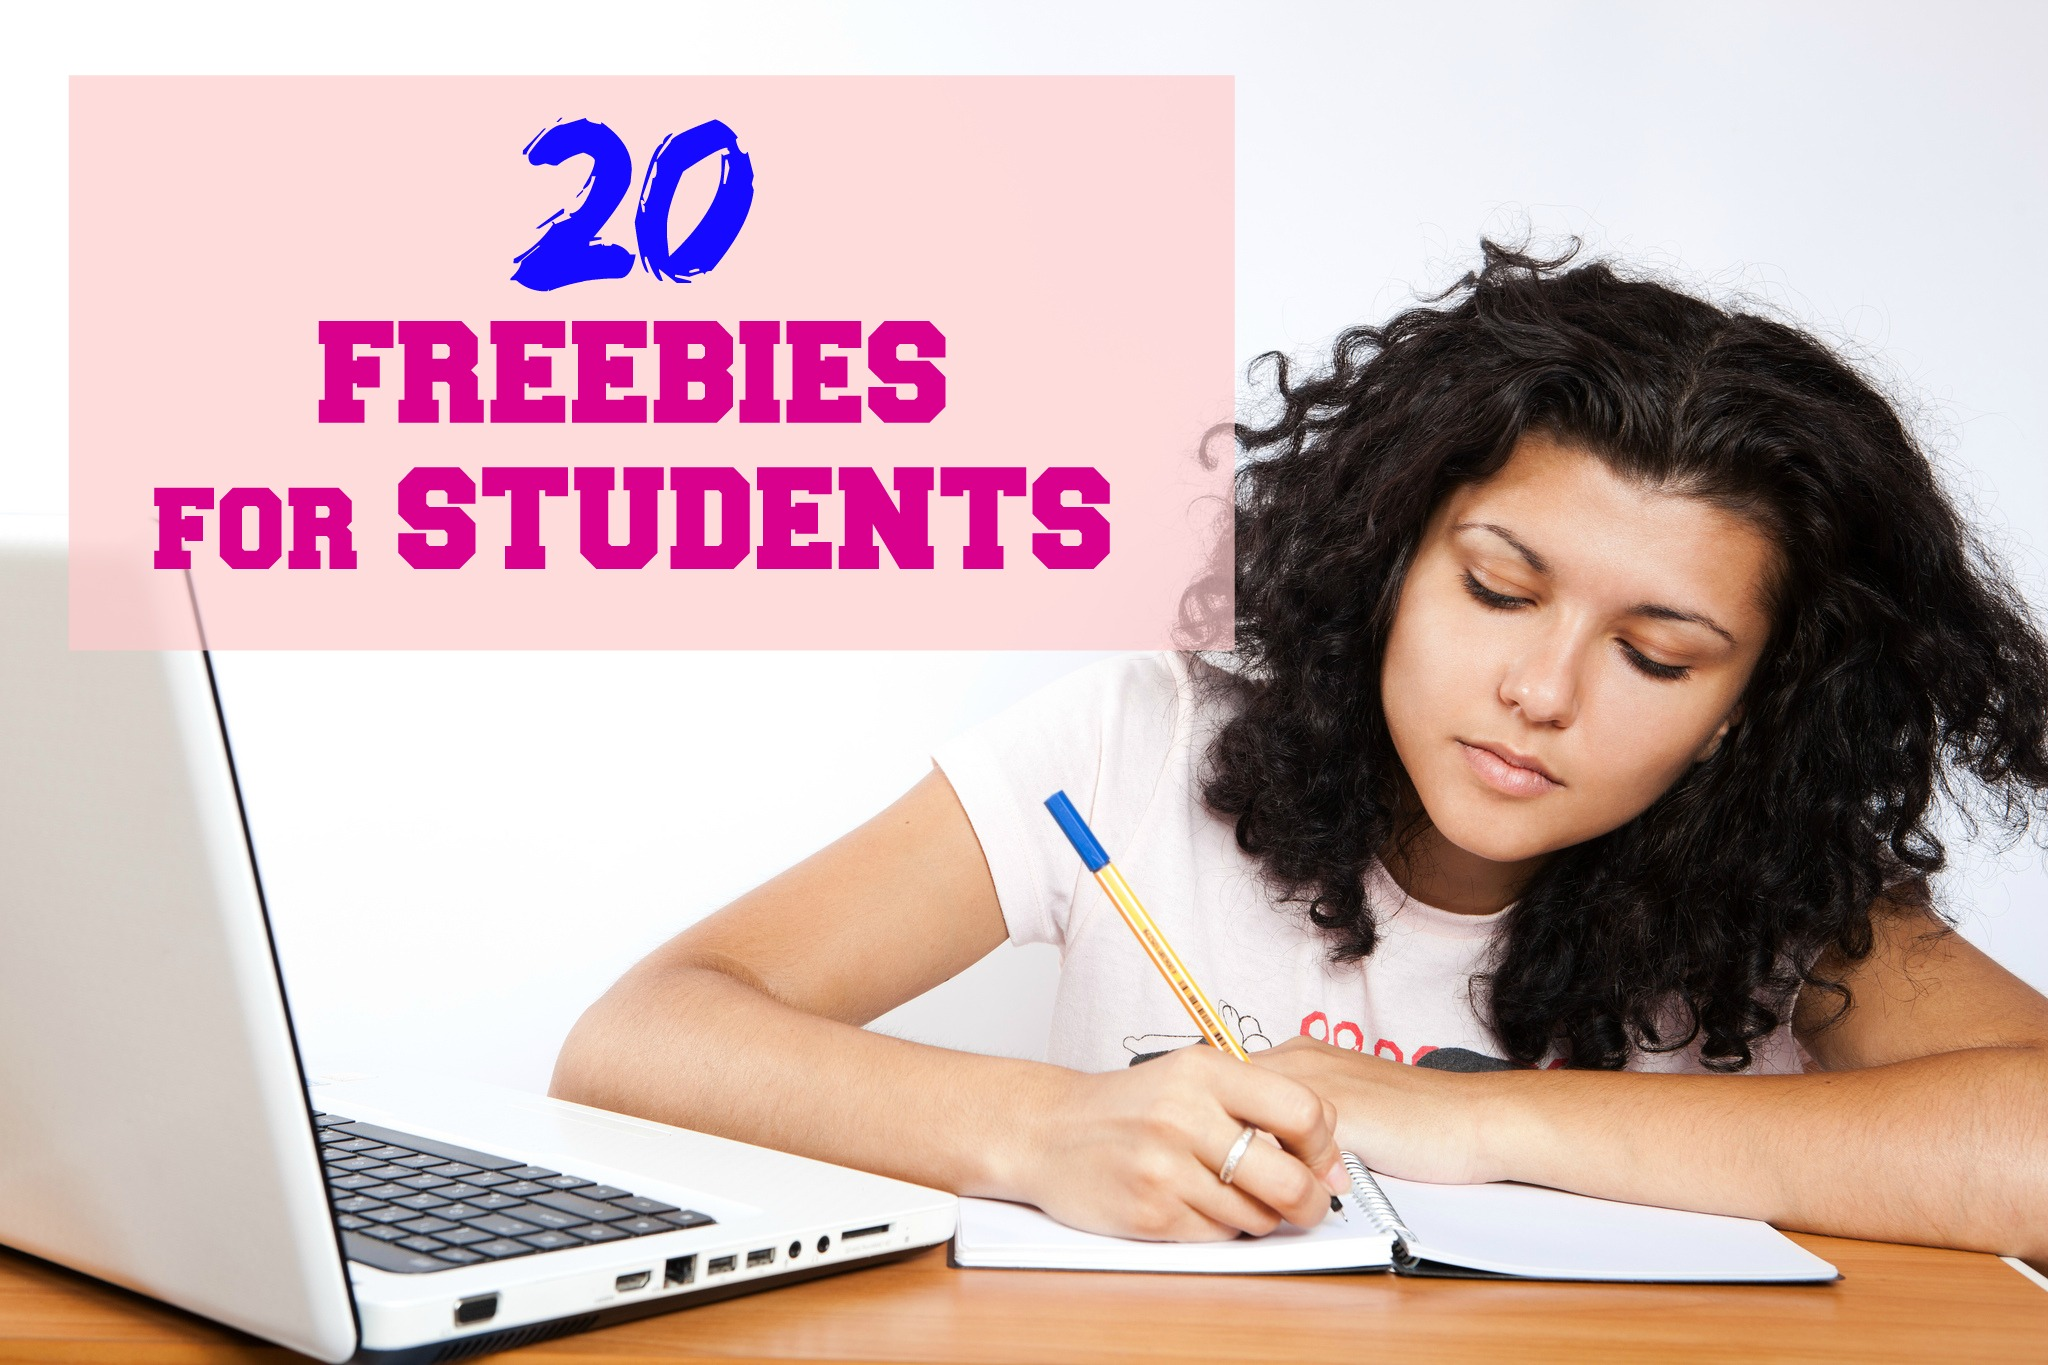 20 Freebies for Students